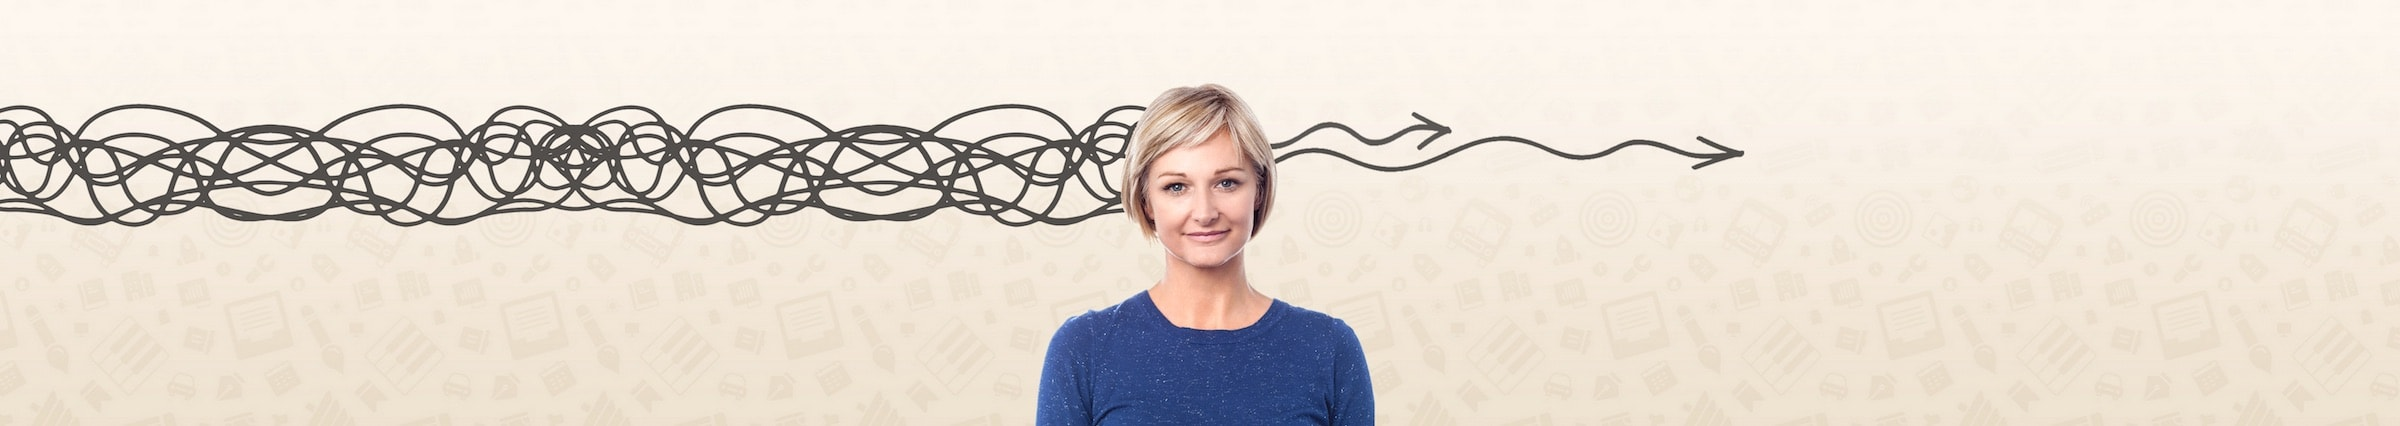 woman standing in front of graphic background with the appearance of a squiggly line entering the left of her head and two gently wavy arrows emerging from the right hand side